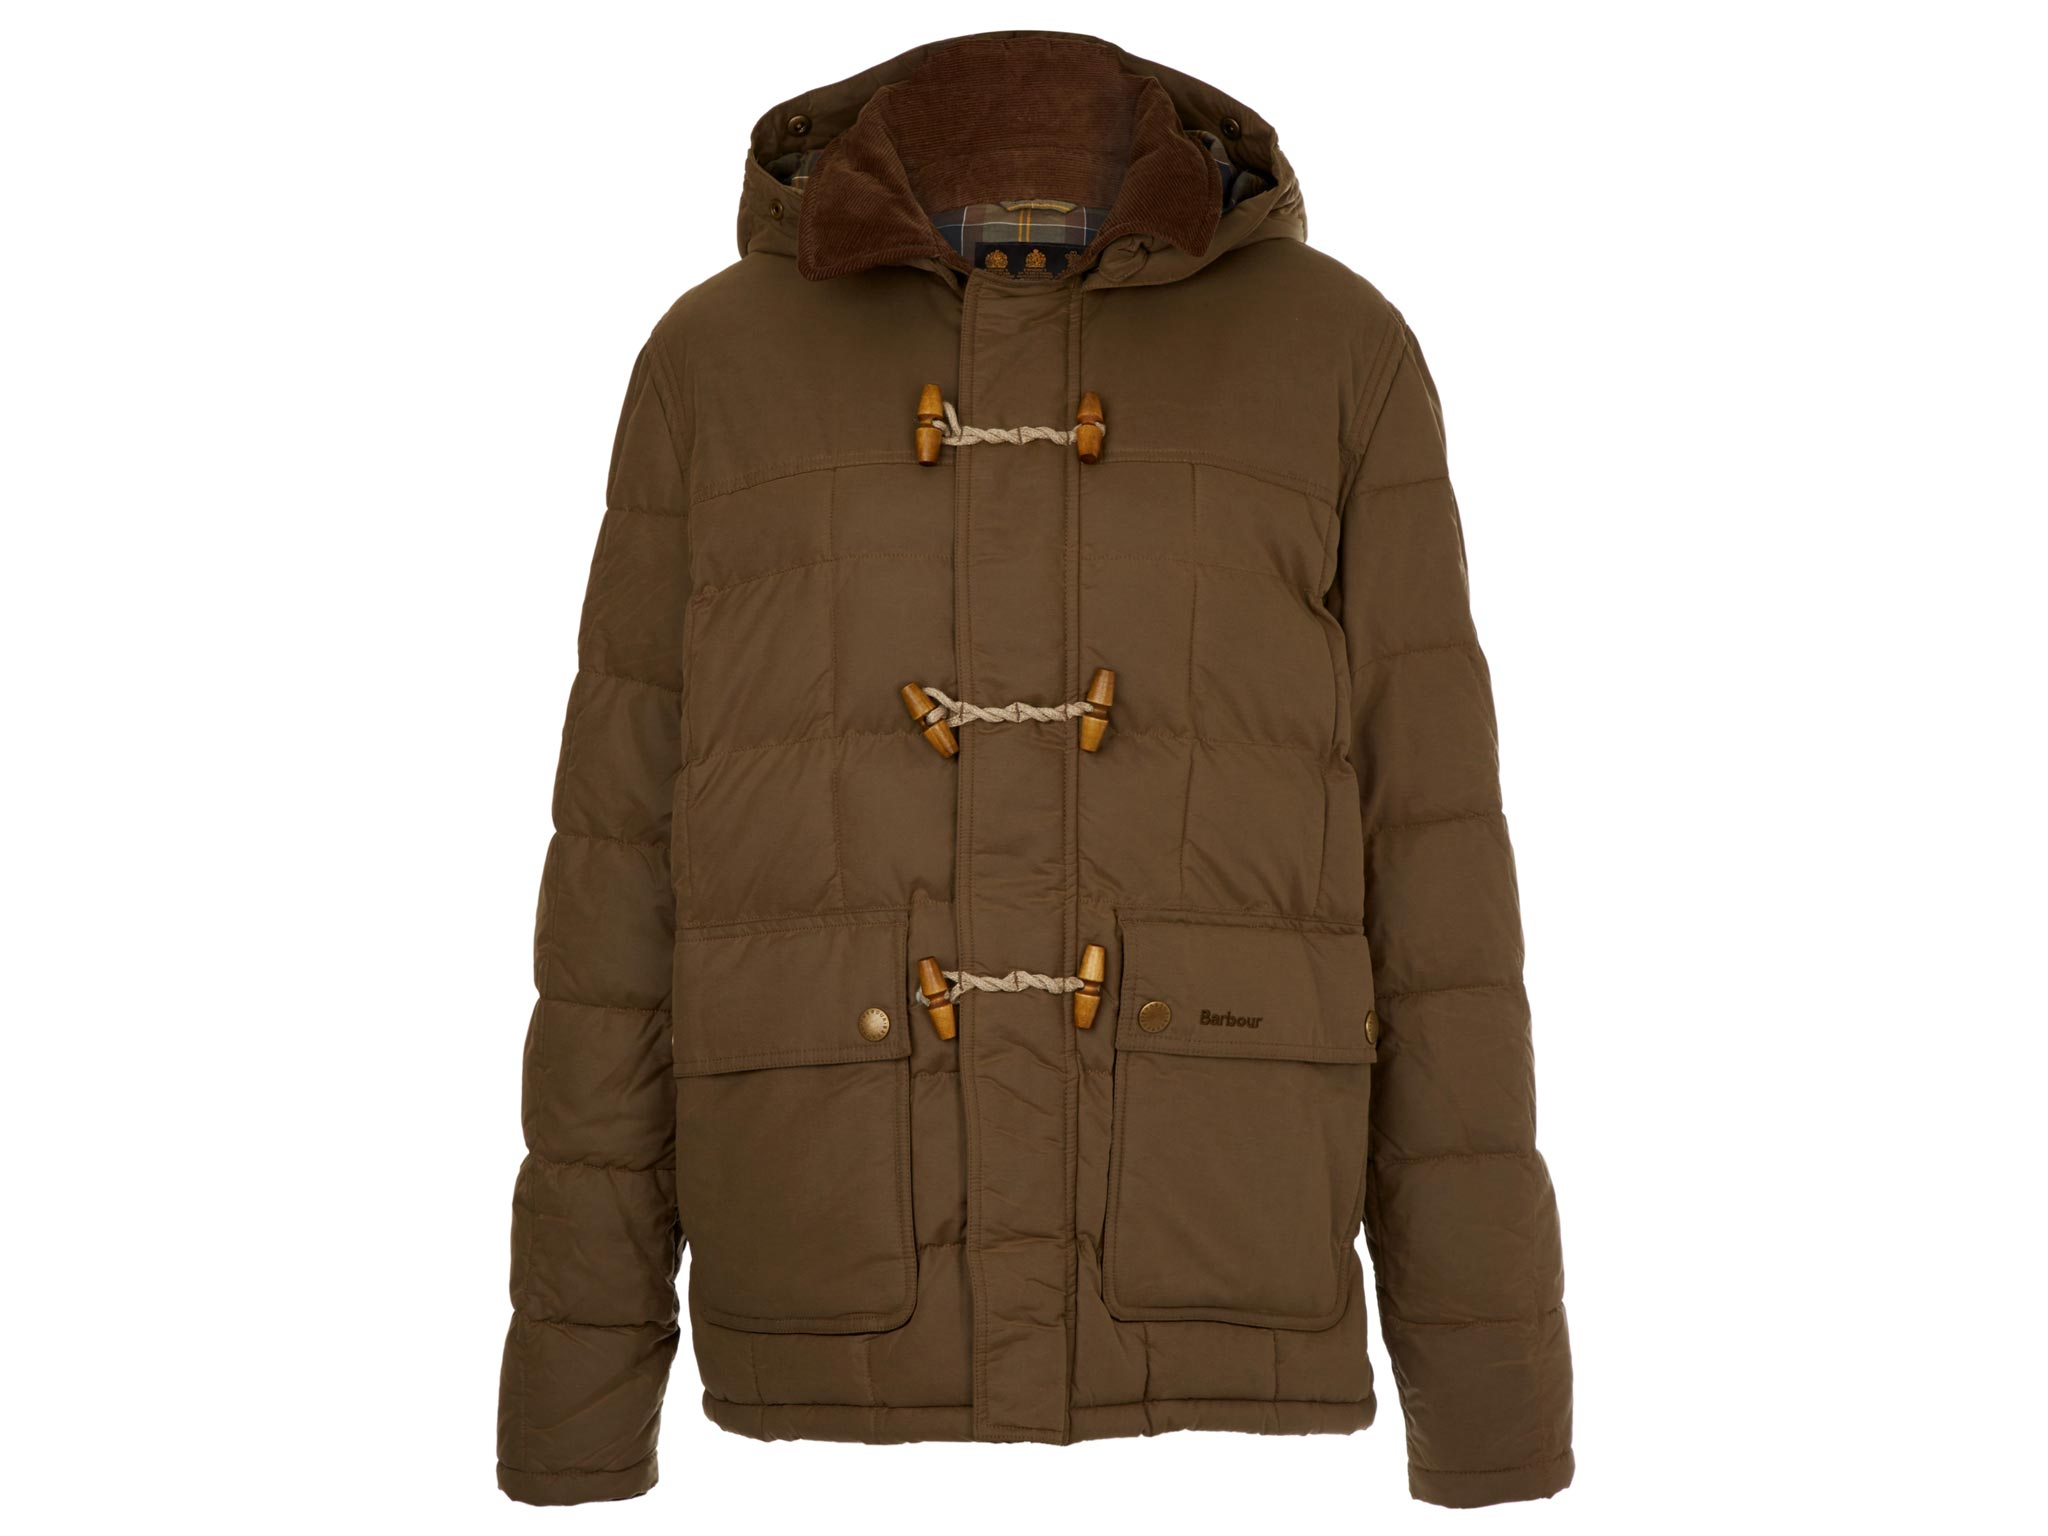 21f97053 The 50 Best coats and jackets | The Independent